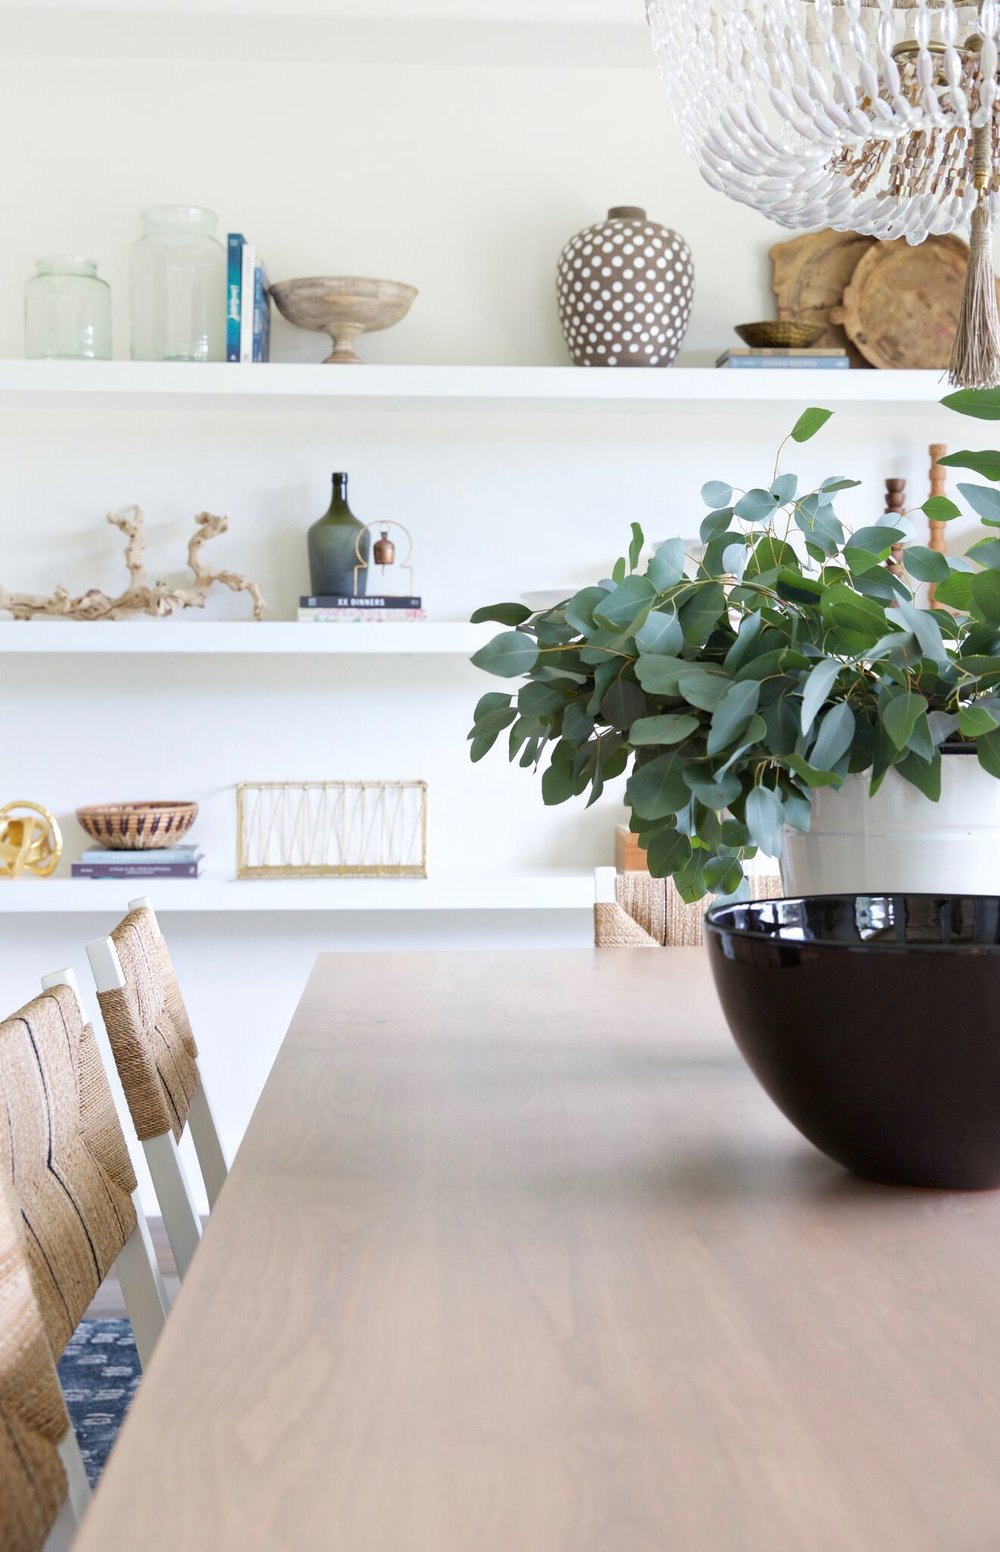 Bowls and plants on top of kitchen table